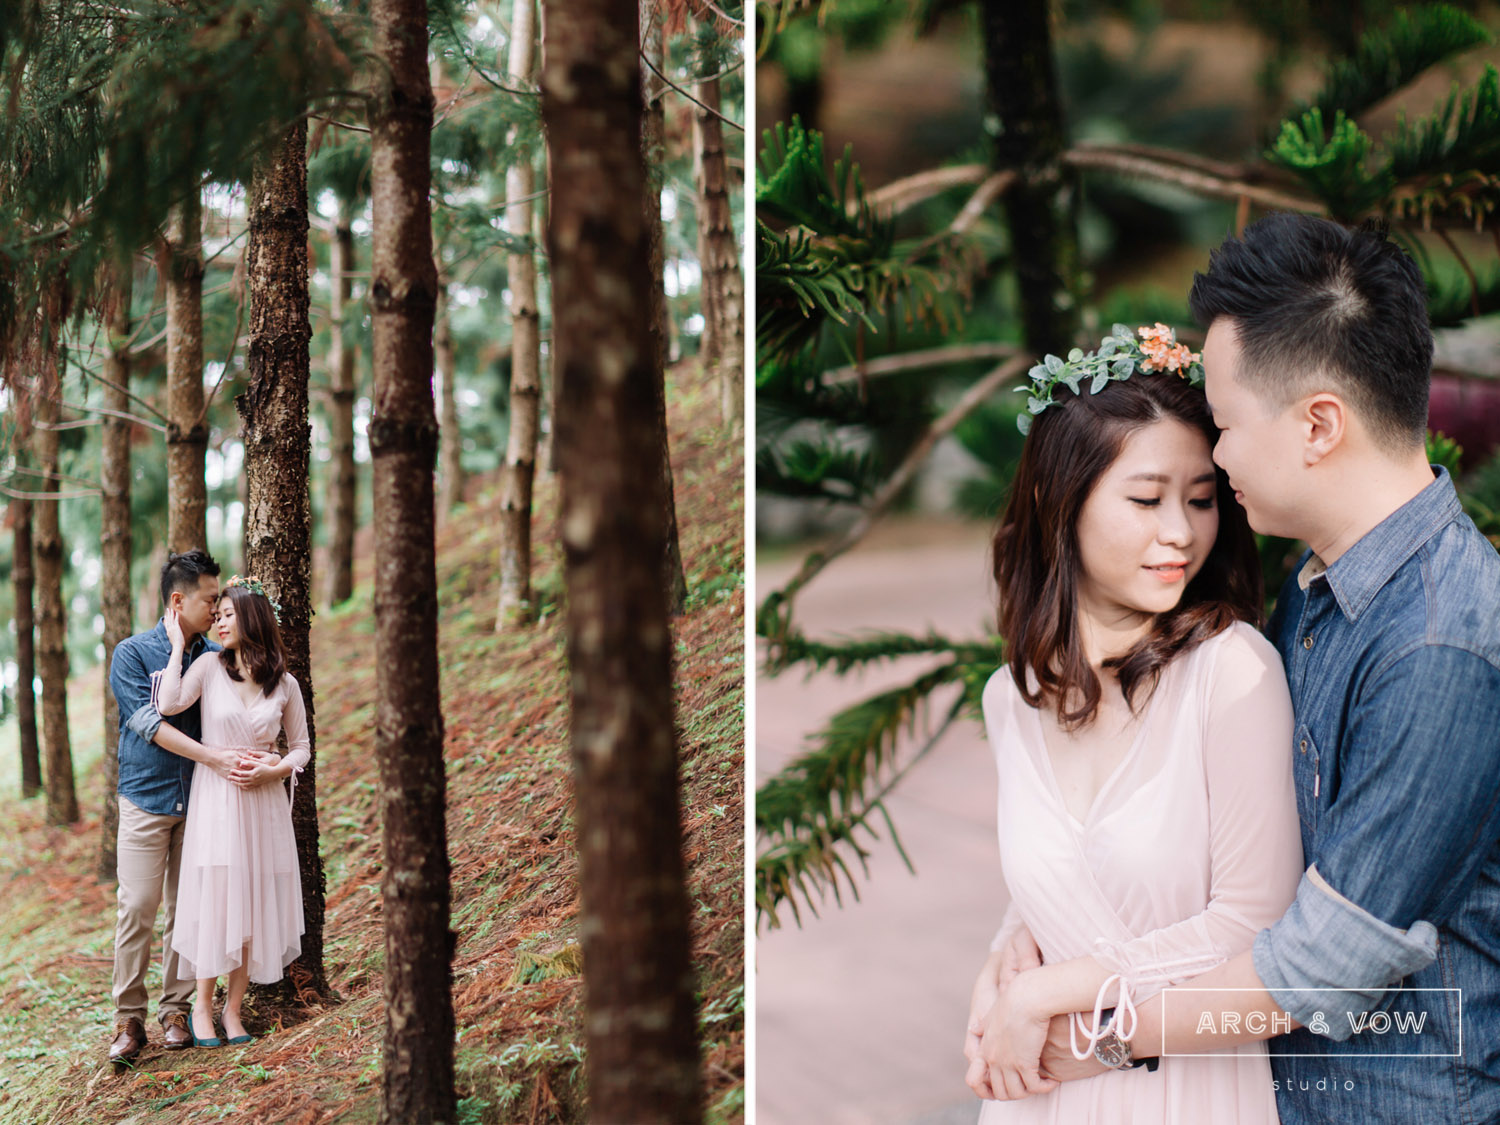 KC & Elly Prewed watermark-021.jpg